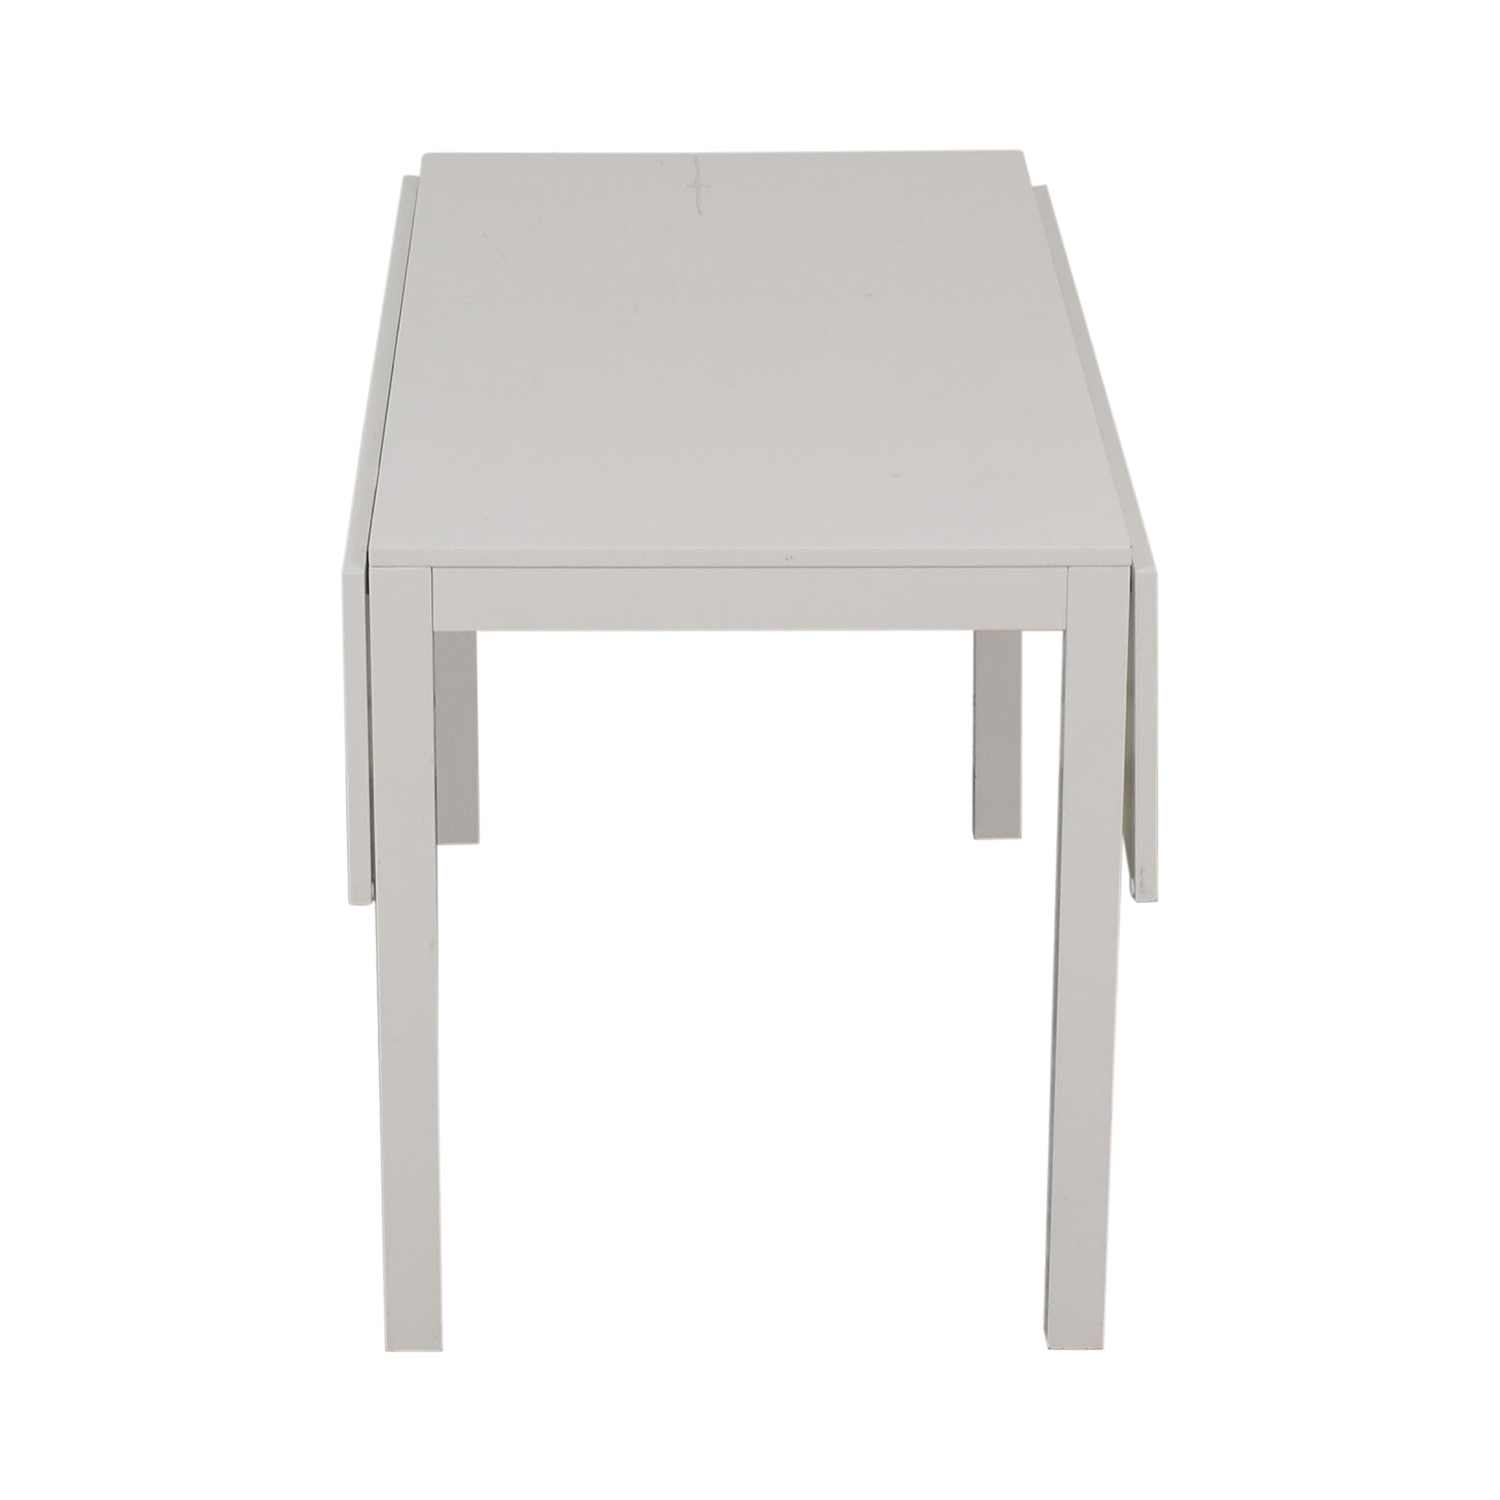 CB2 CB2 Drop Leaf Table discount